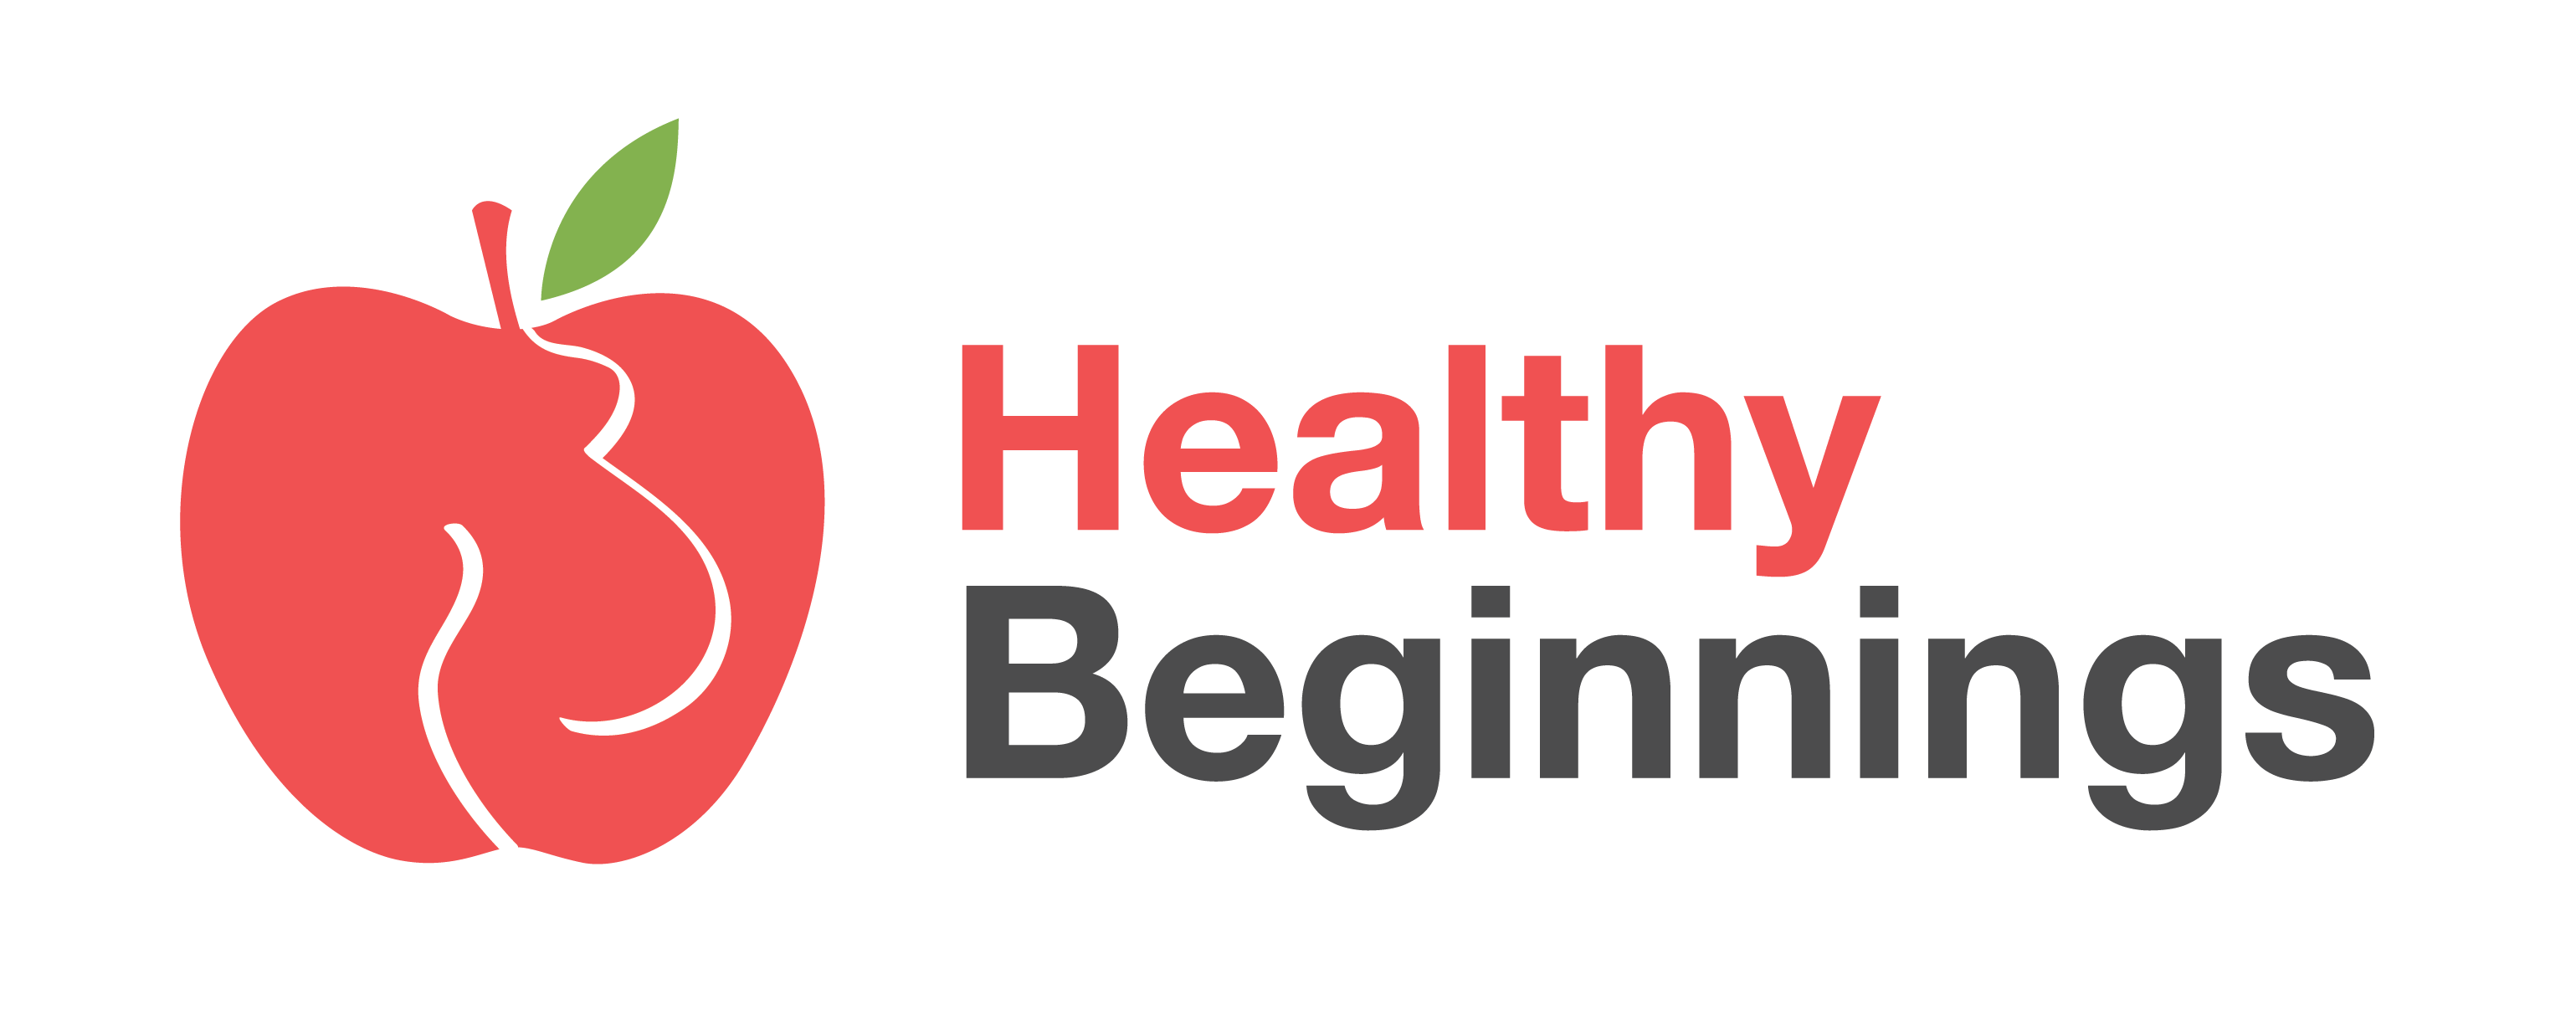 Healthy Beginnings Logo